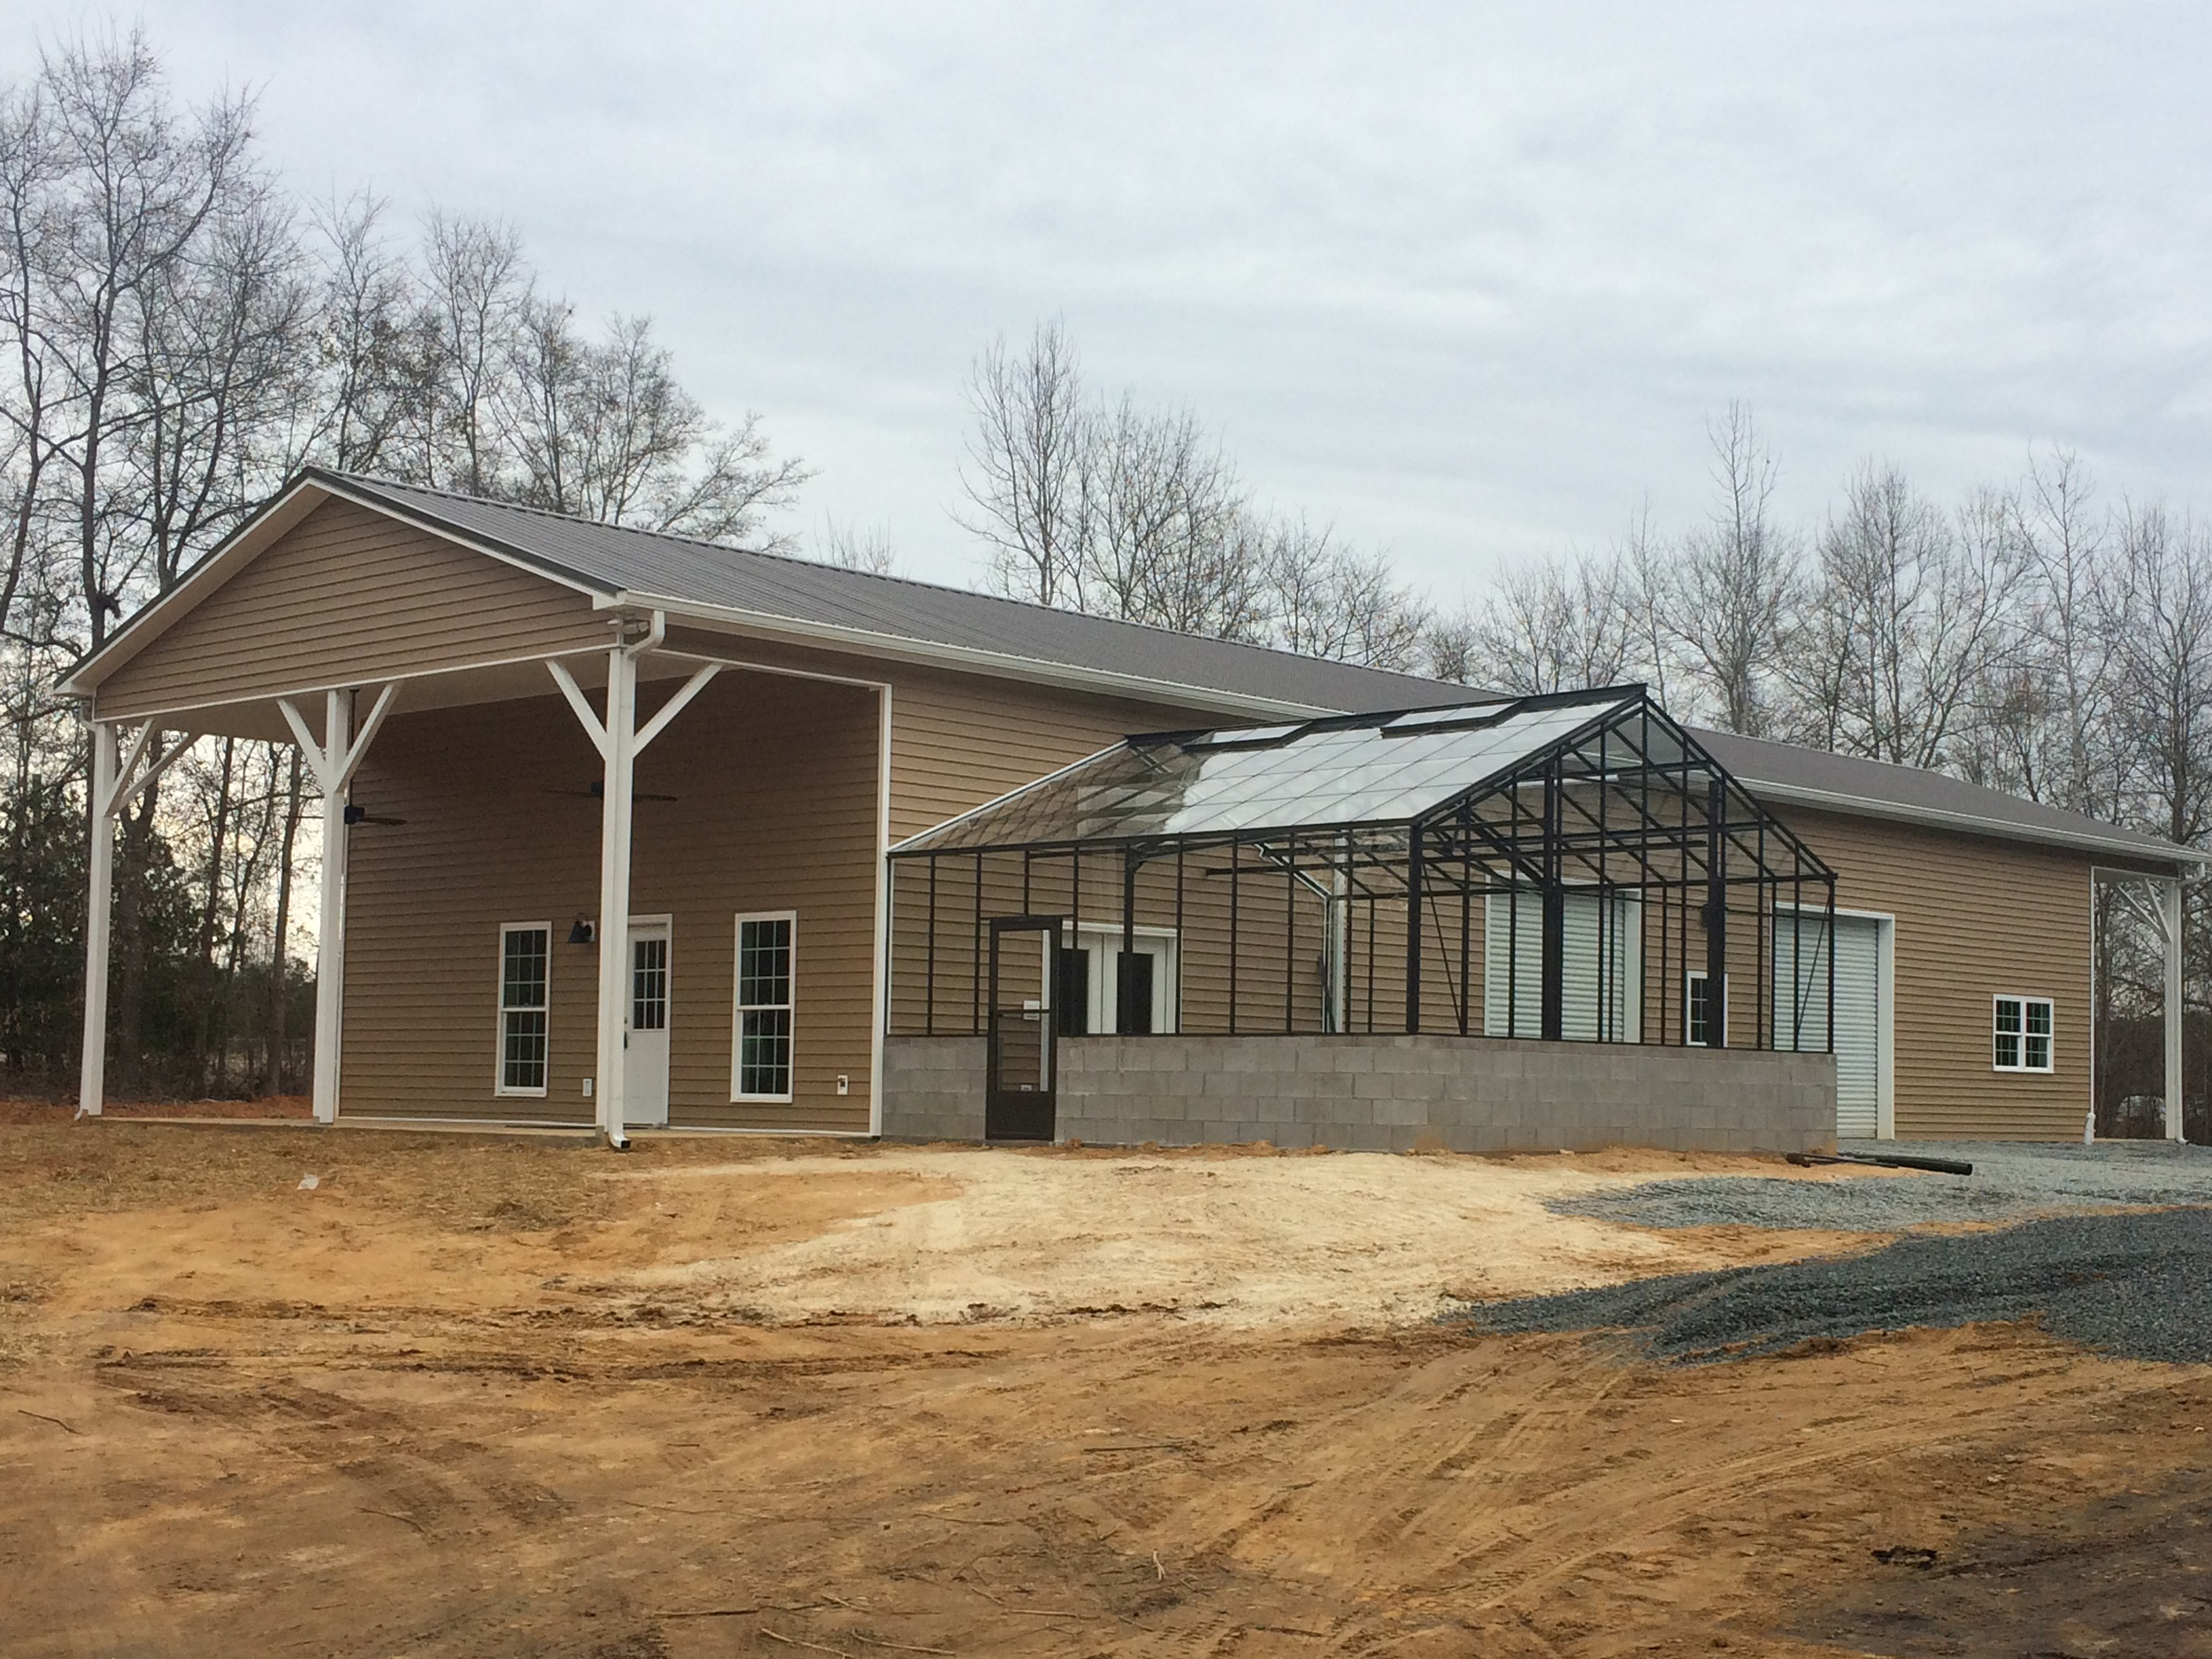 Thisis 3,400sf of pureworkhorse. Just about any project you can think of can be crafted here.